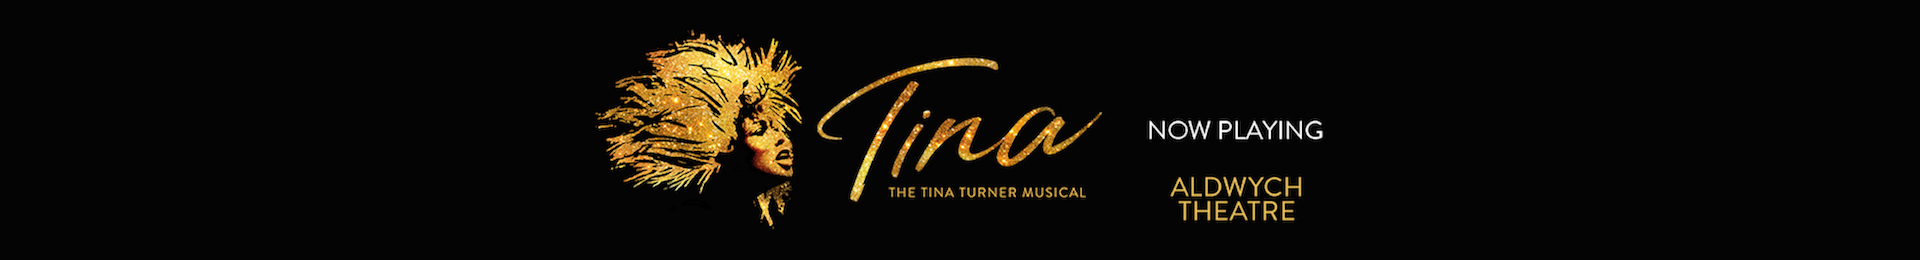 TINA: The Tina Turner Musical Tickets at the Aldwych Theatre